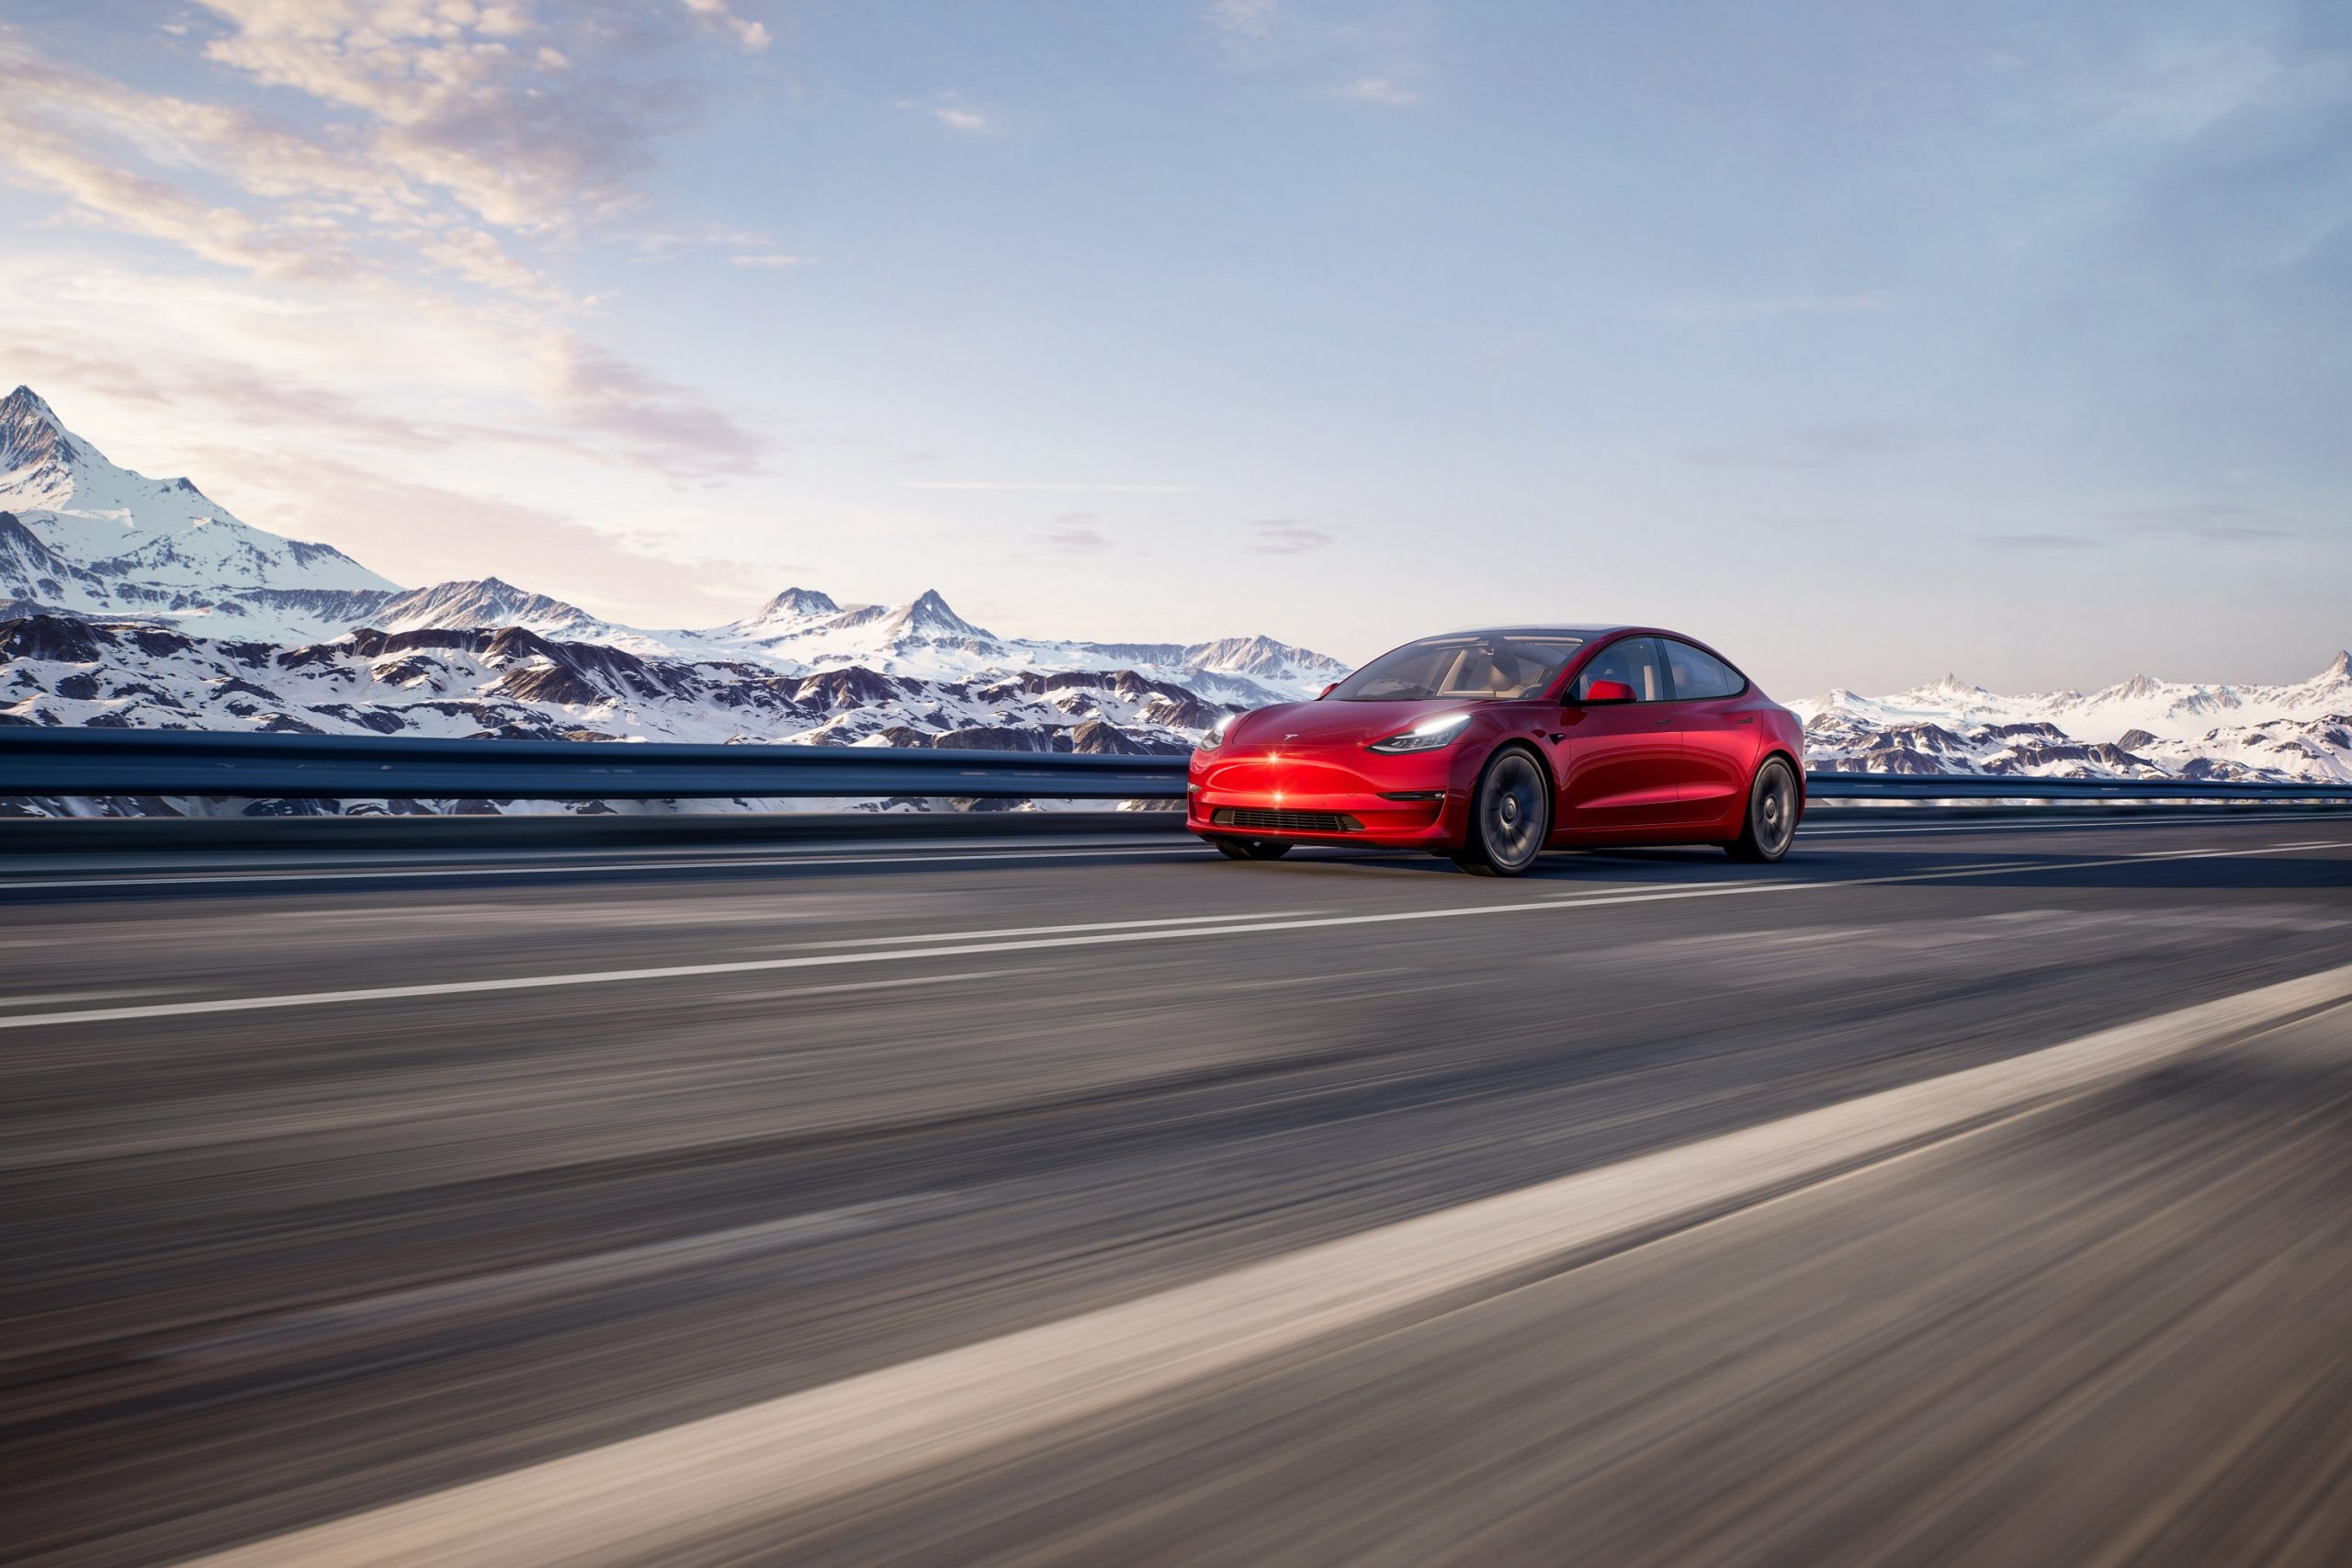 A red Tesla Model 3 shot from the front 3/4 on an alpine road